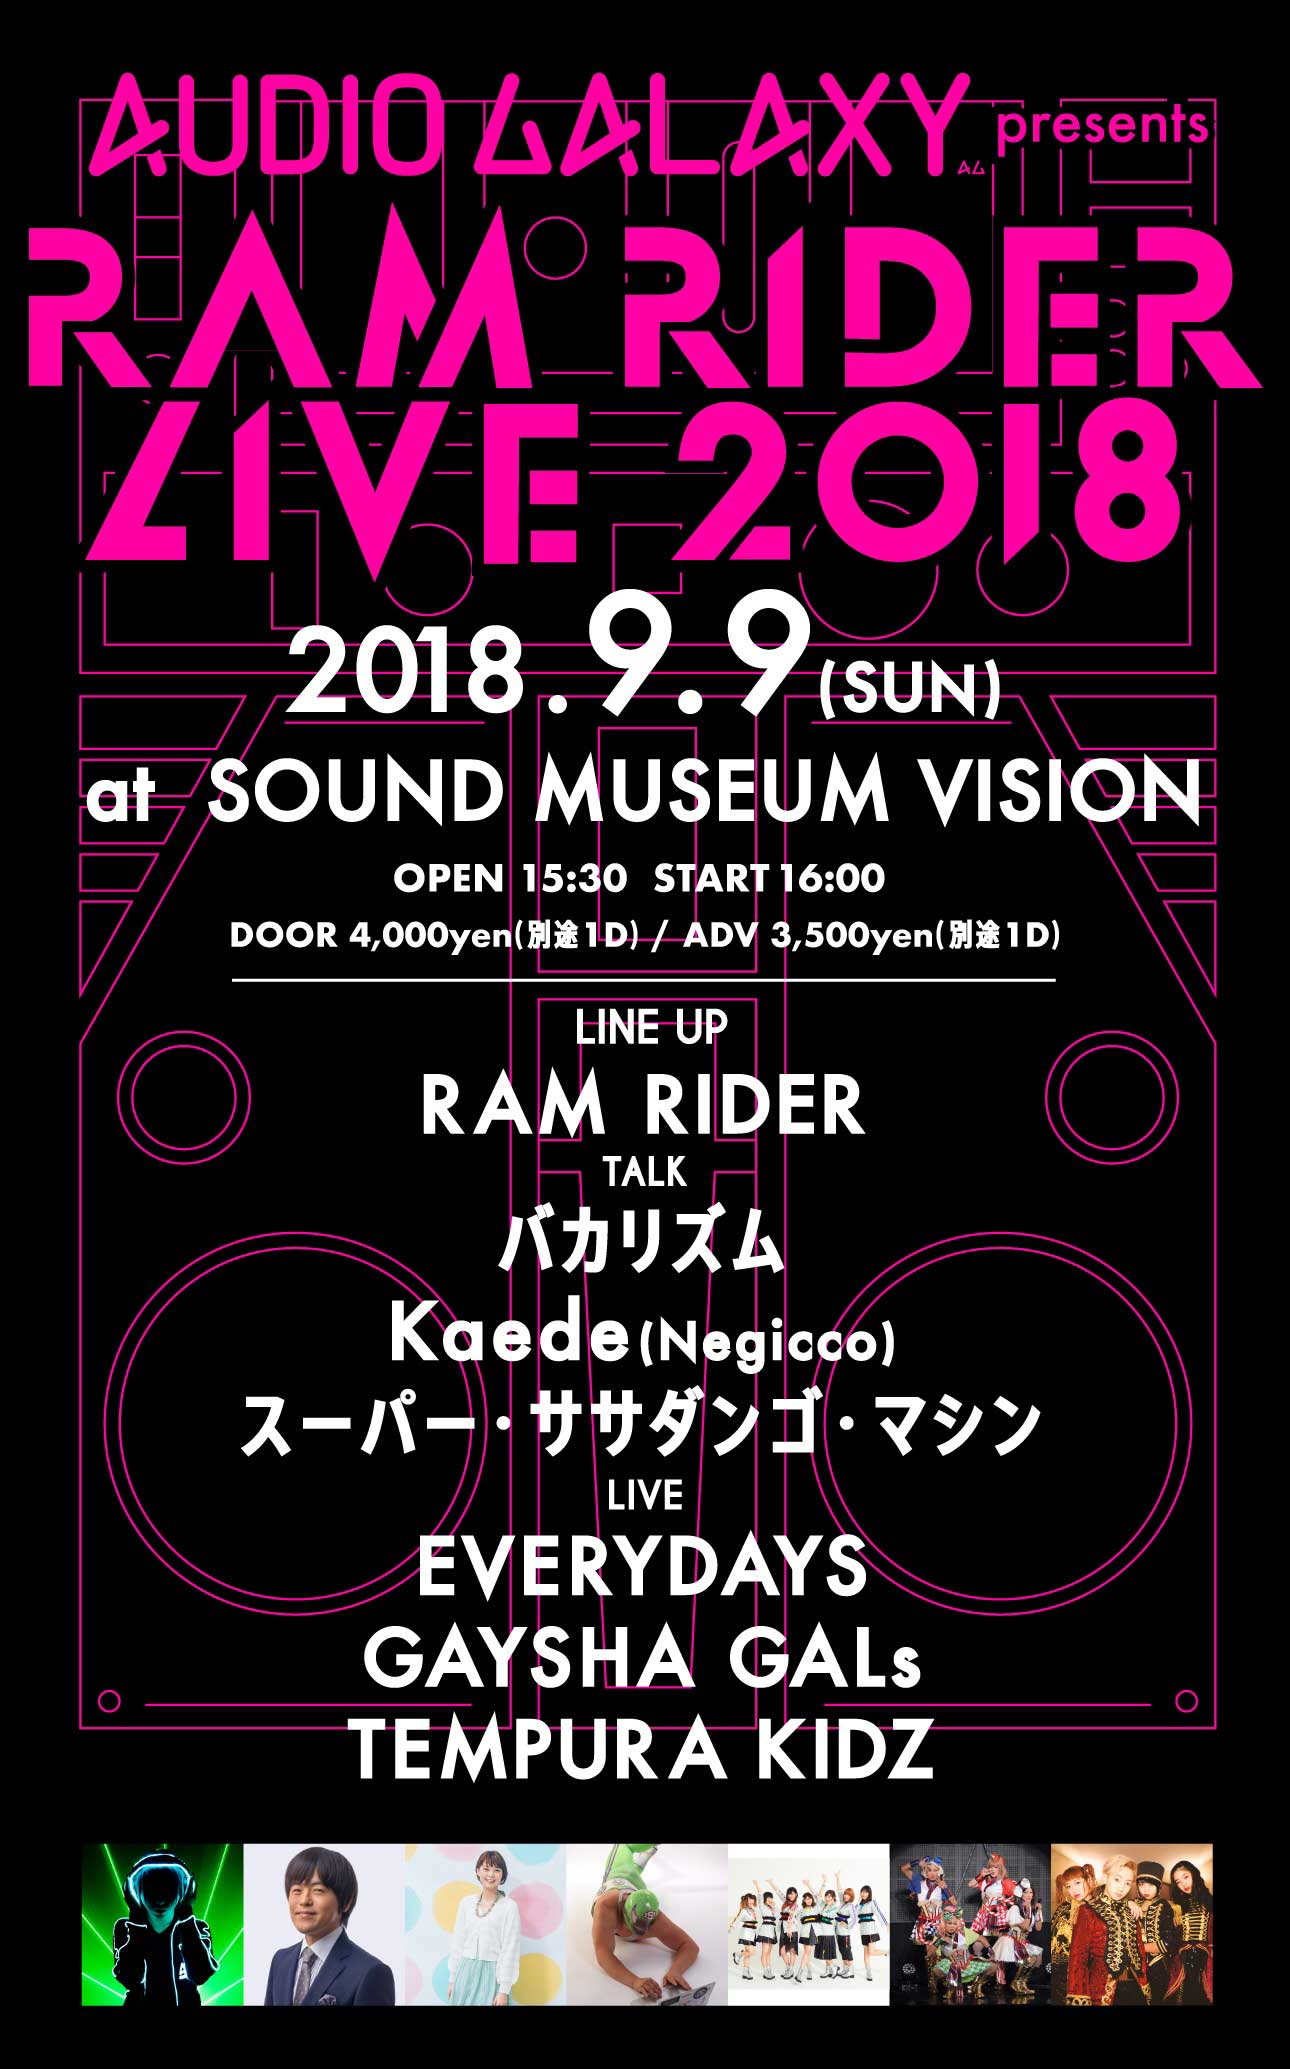 AUDIO GALAXY presents RAM RIDER LIVE 2018 @SOUND MUSEUM VISION